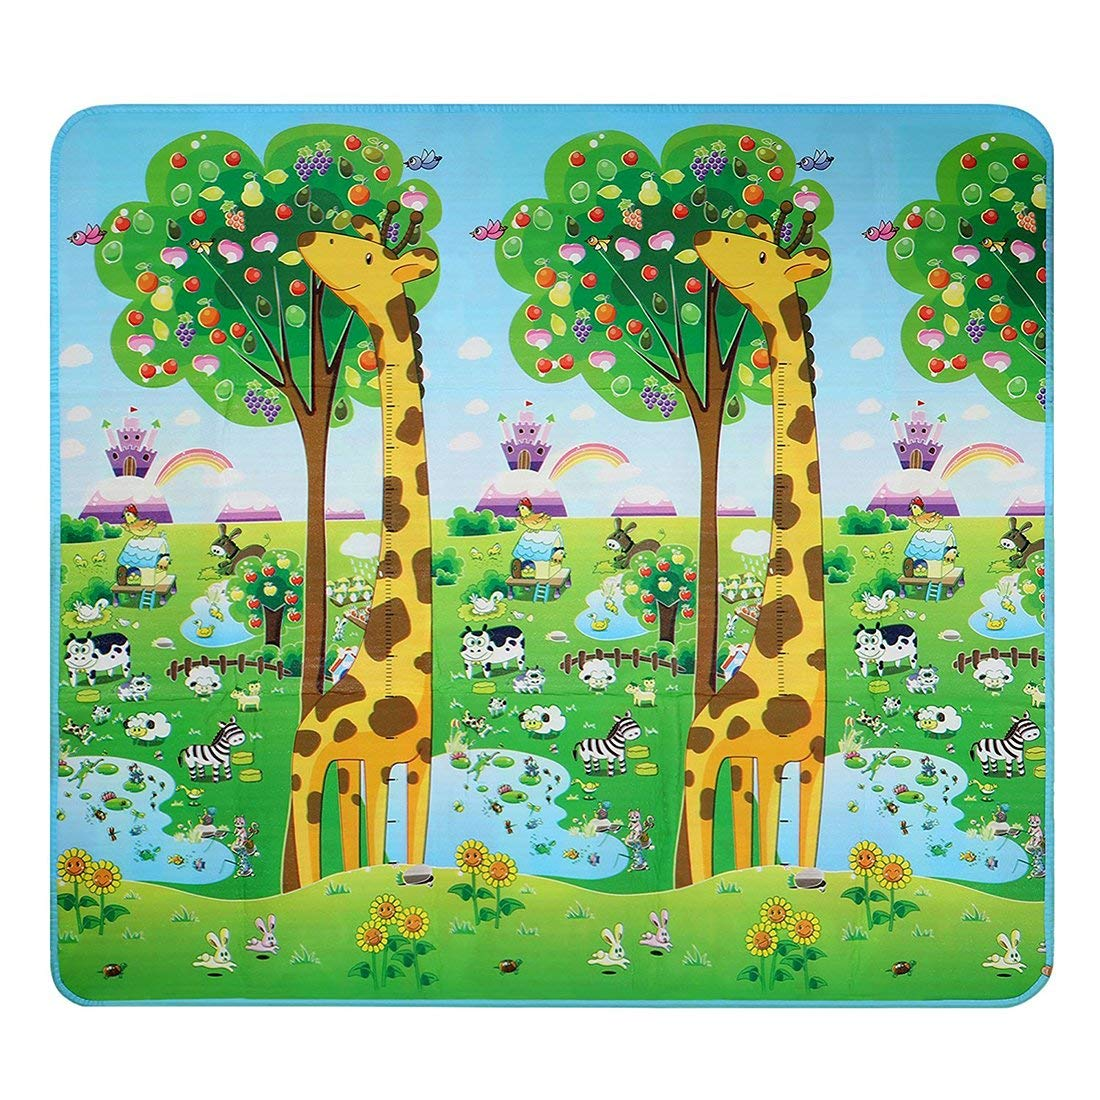 SODIAL(R) Baby Kid Toddler Play Crawl Mat Carpet Foam Blanket Rug for In/Out Doors